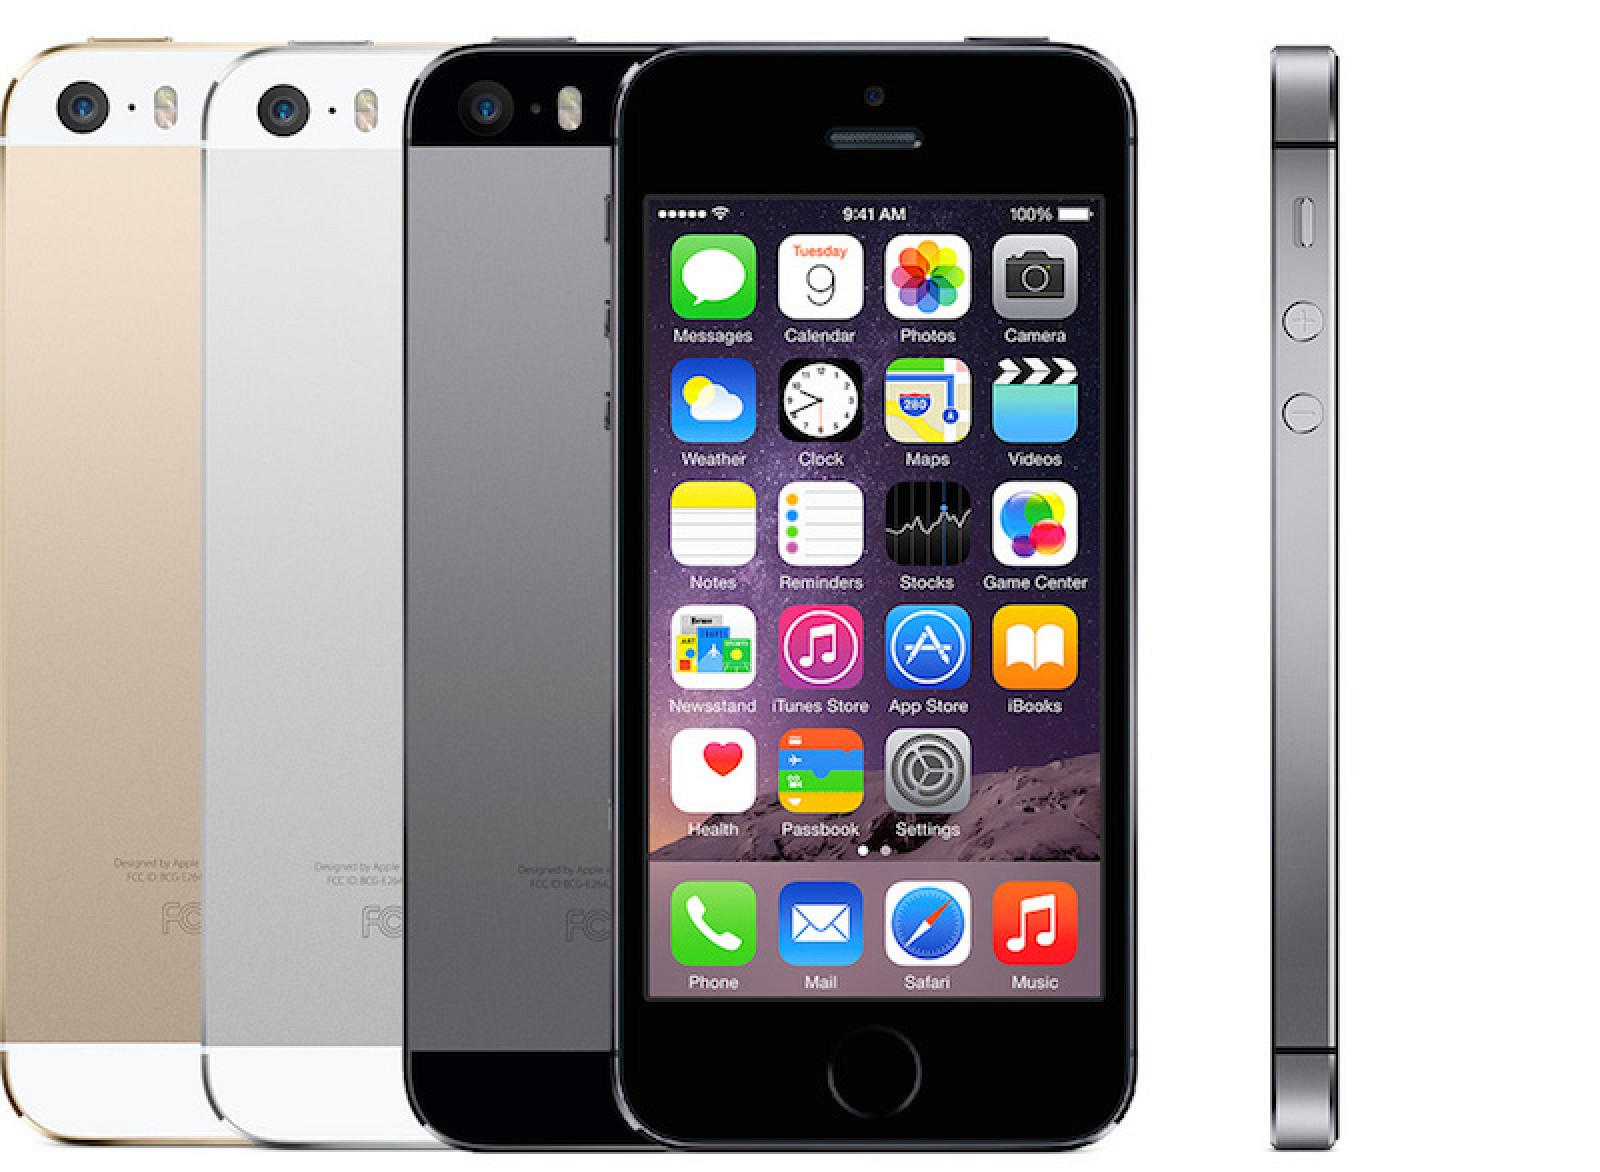 Apple Hit With Class Action Lawsuit for iPhone 5 Wi-Fi ...